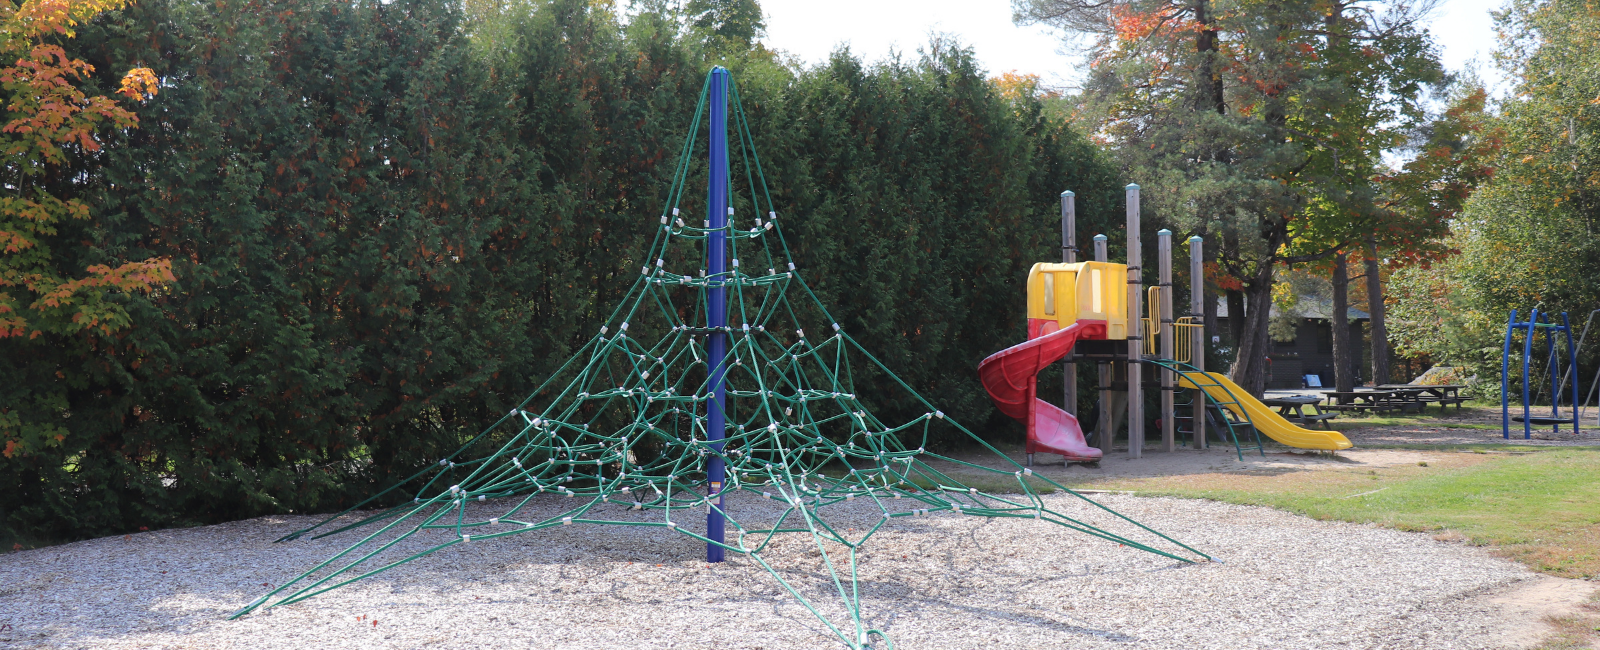 West Guilford playground equipment